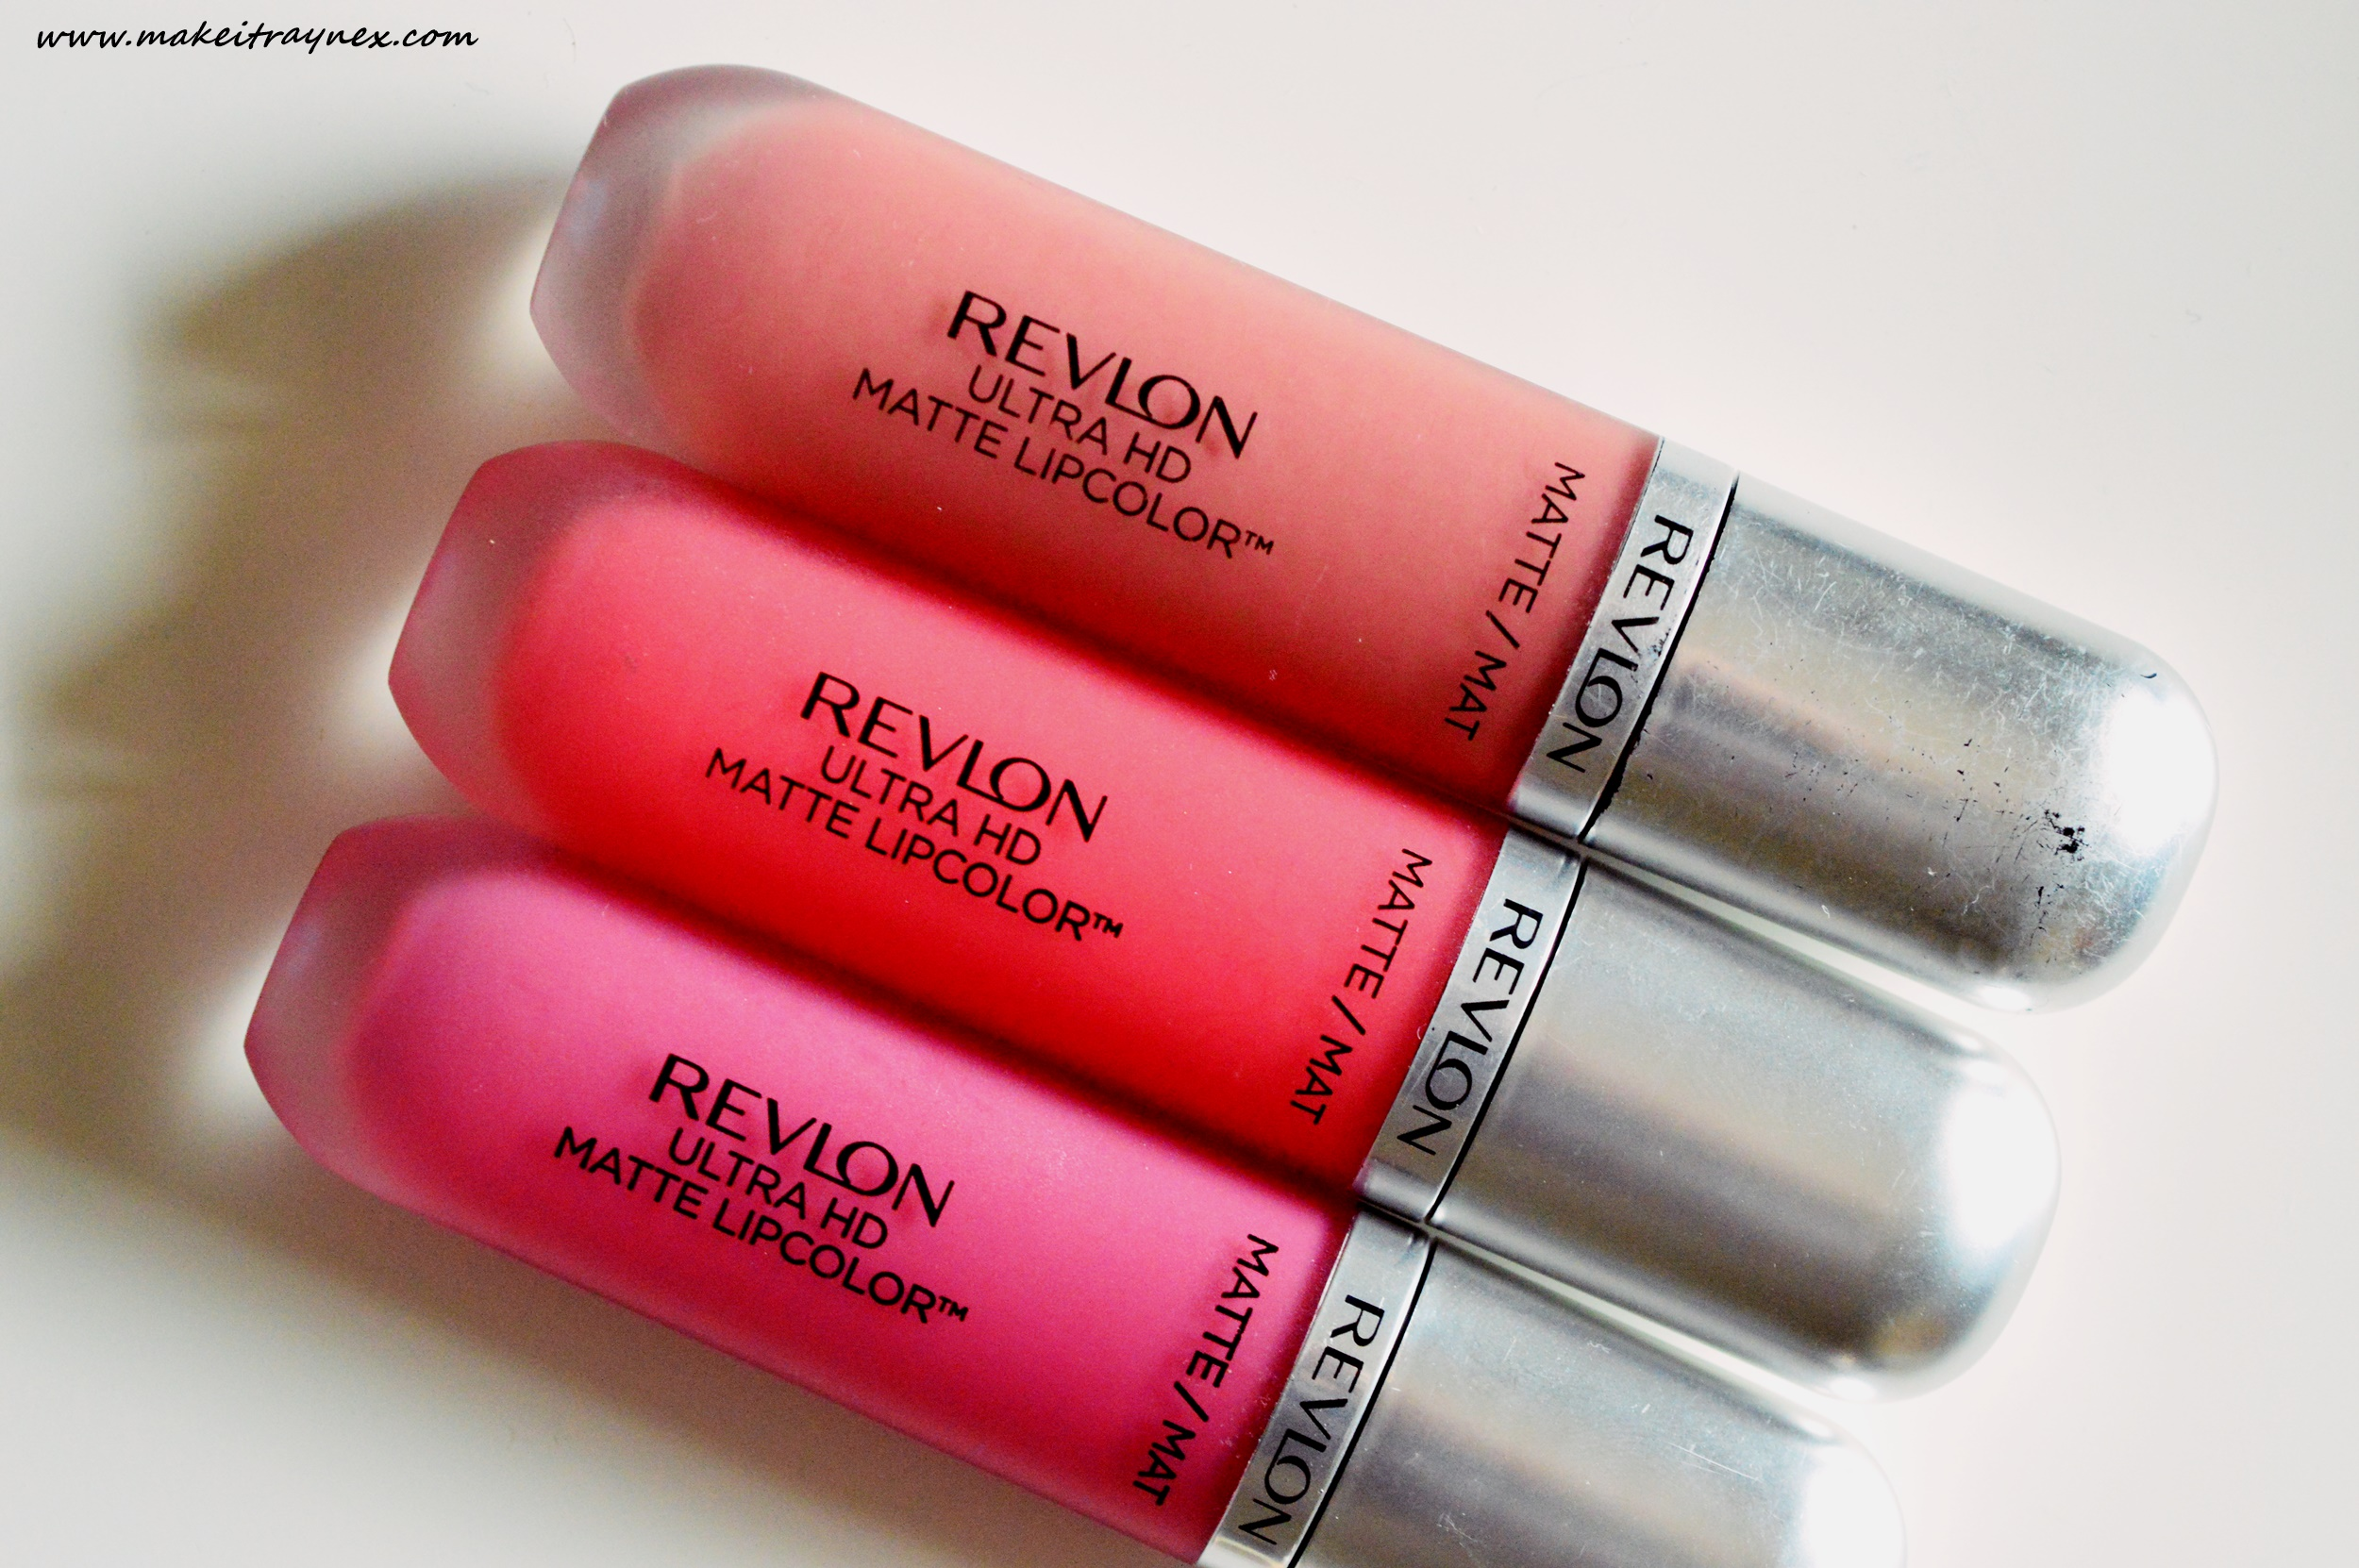 My ultimate make-up picks from Revlon {SERIES}